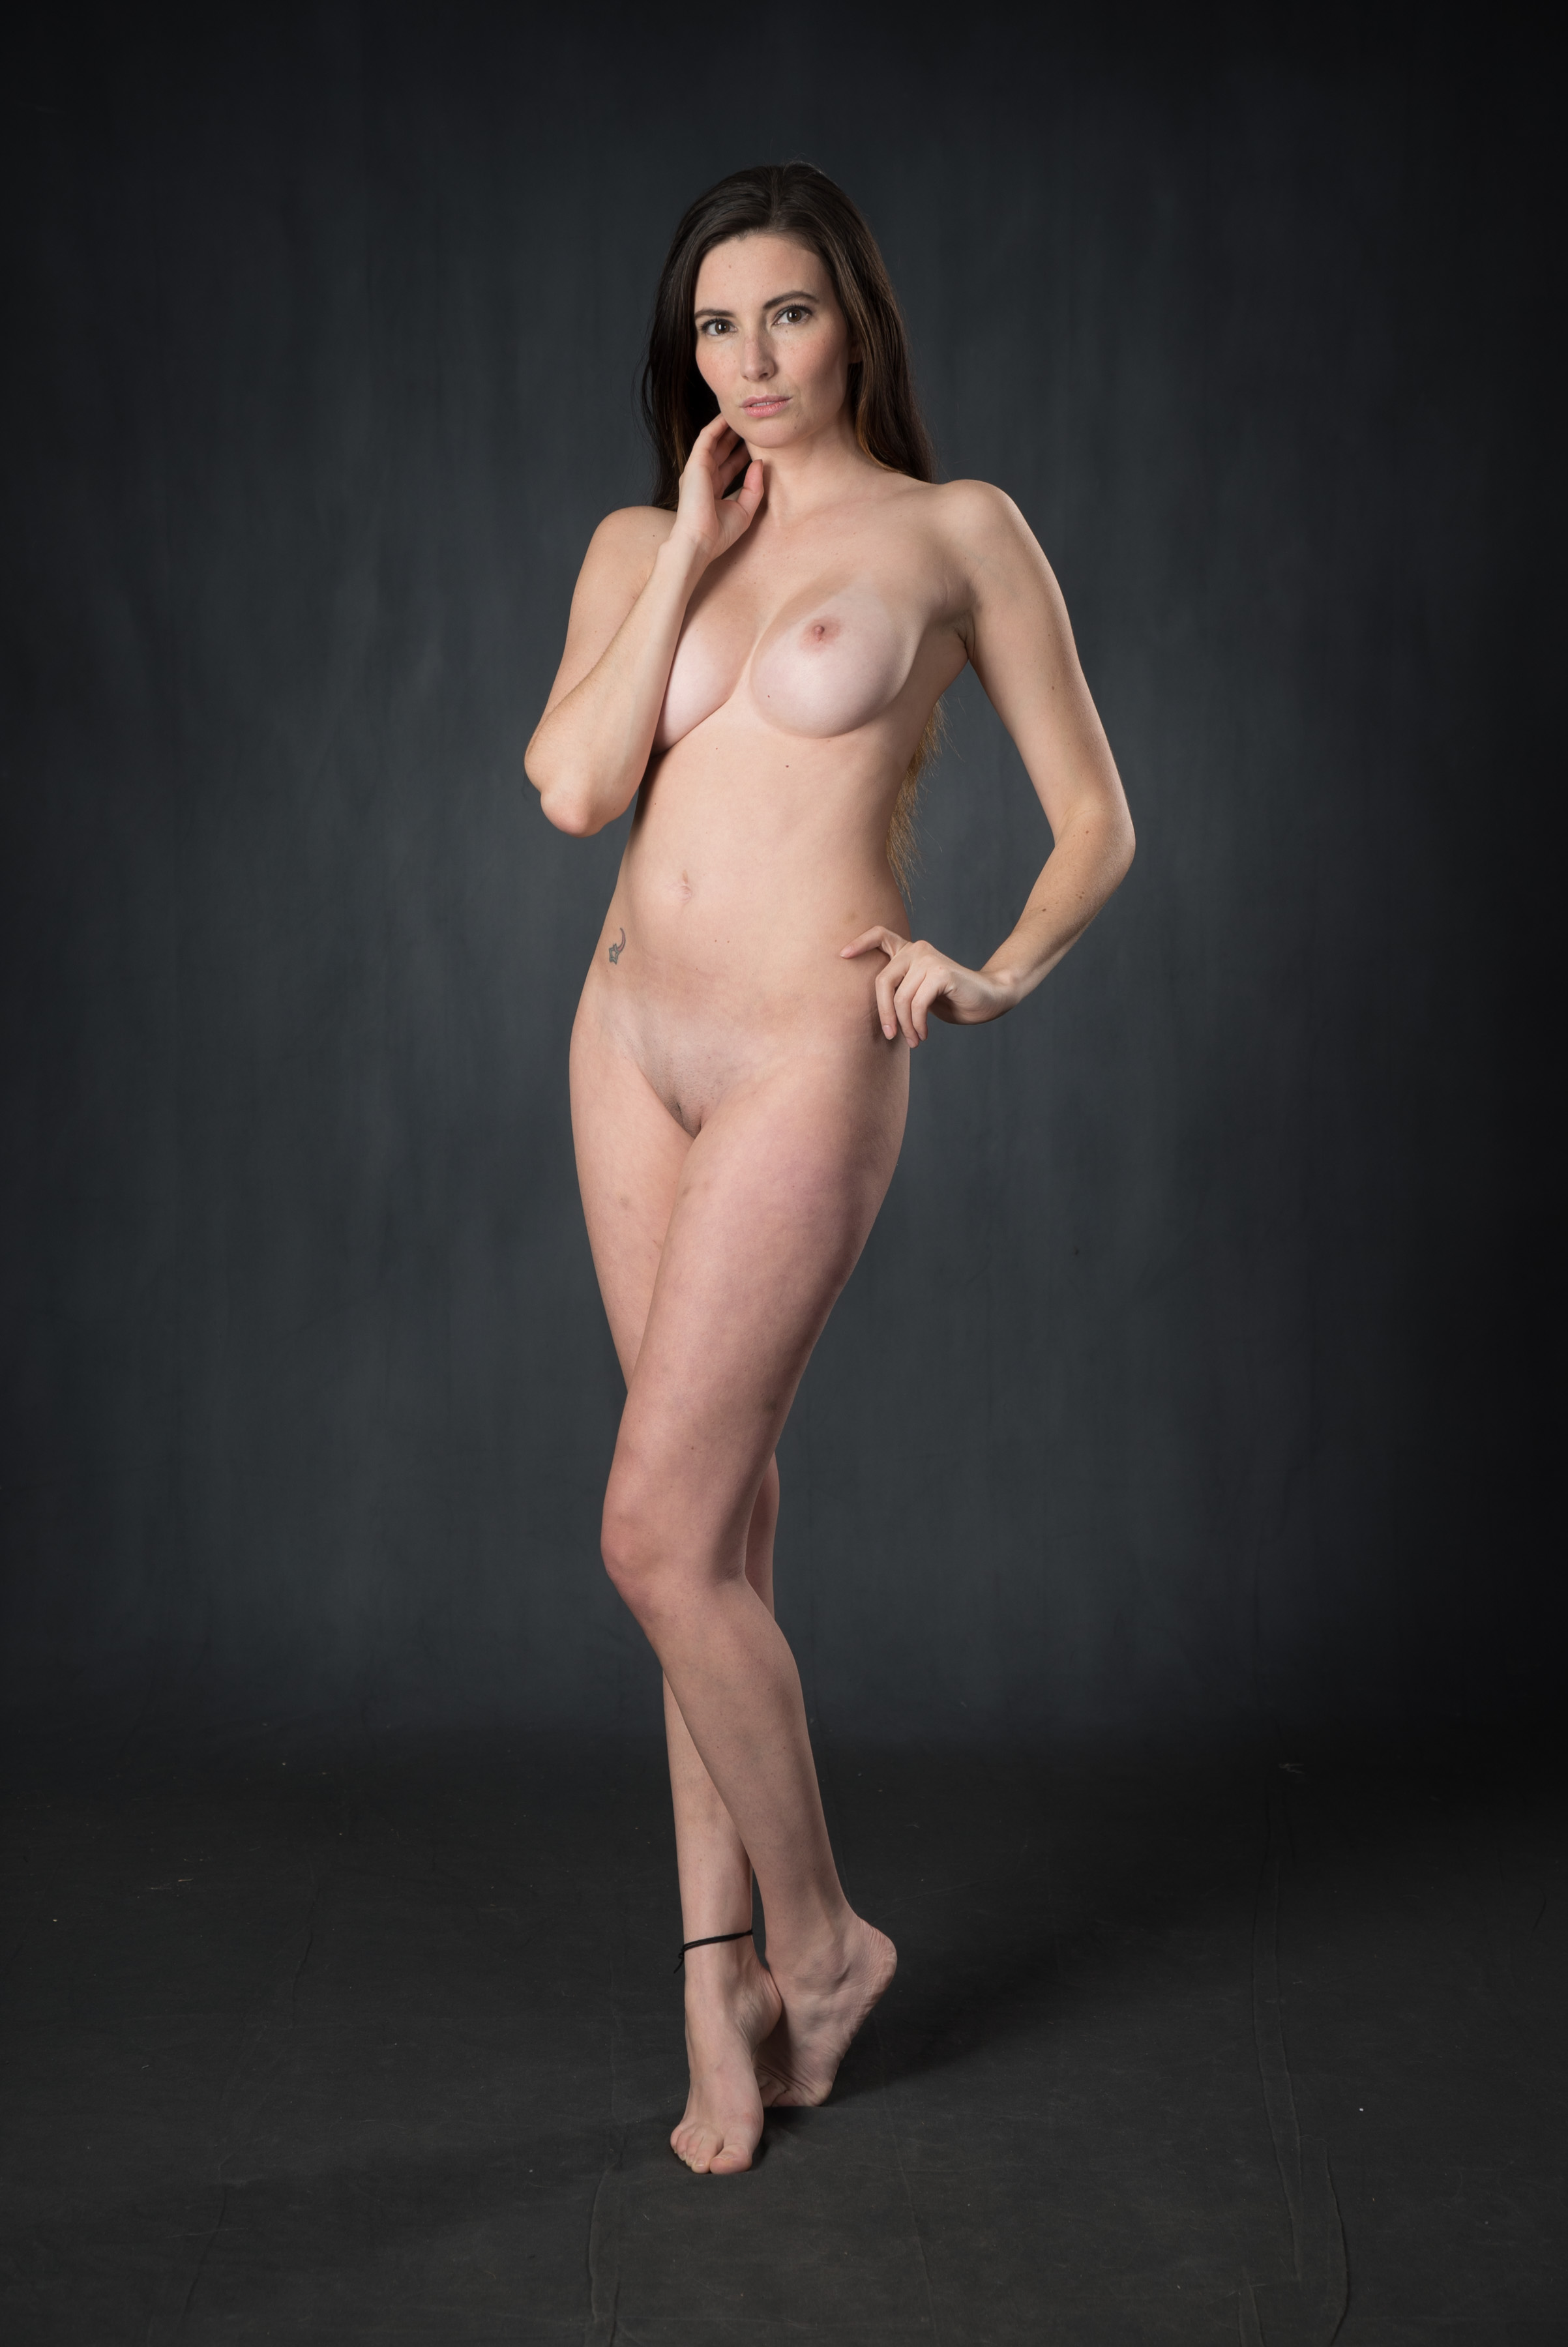 Nude Standing Poses 31